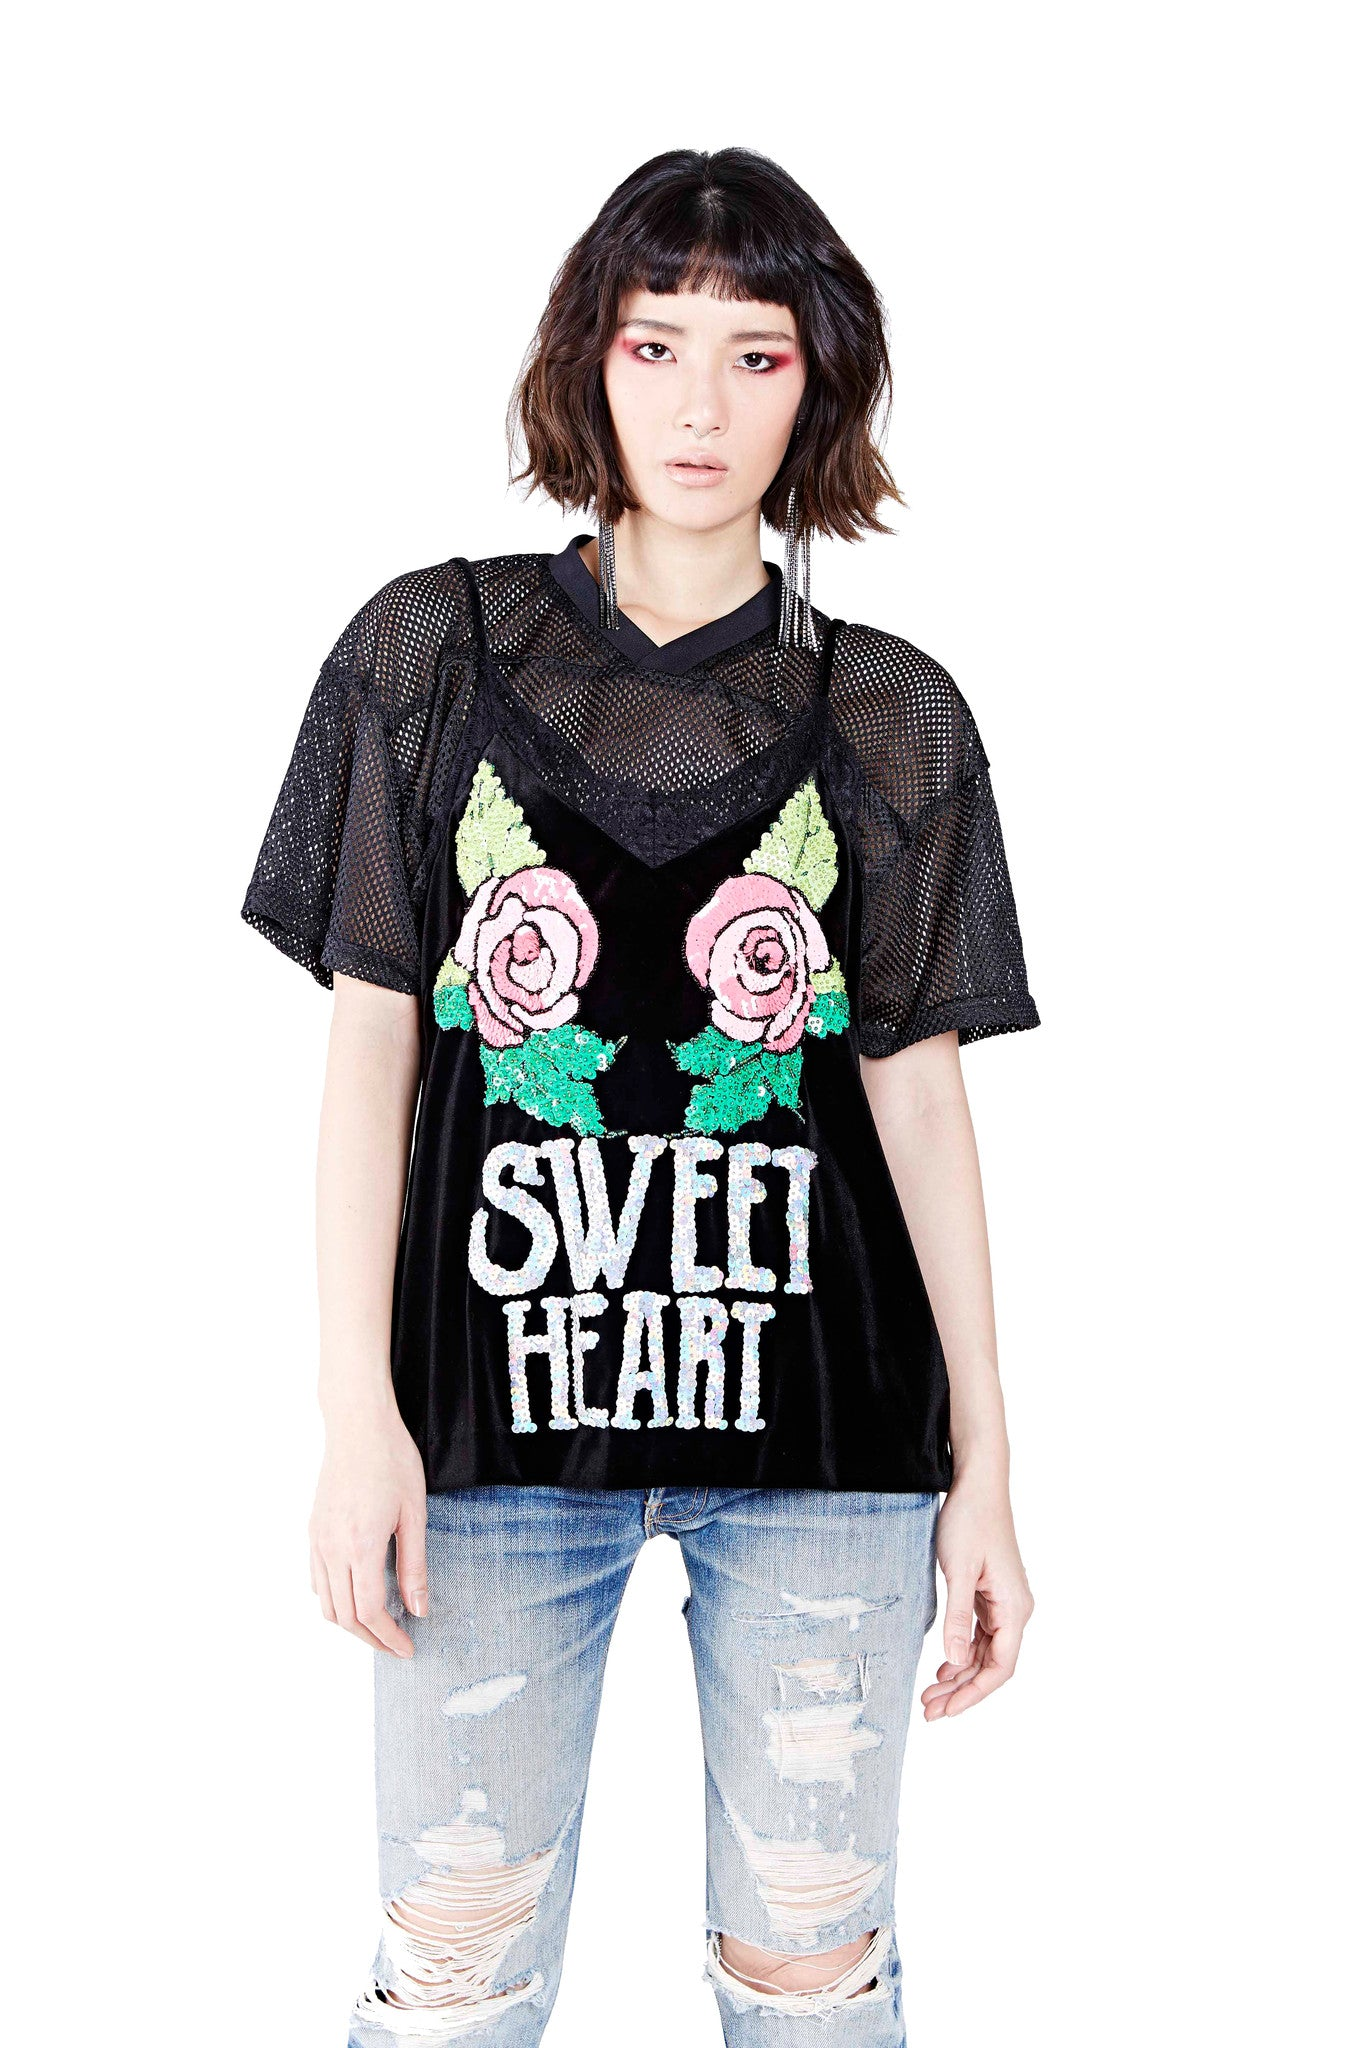 Sweet Heart Top - Black